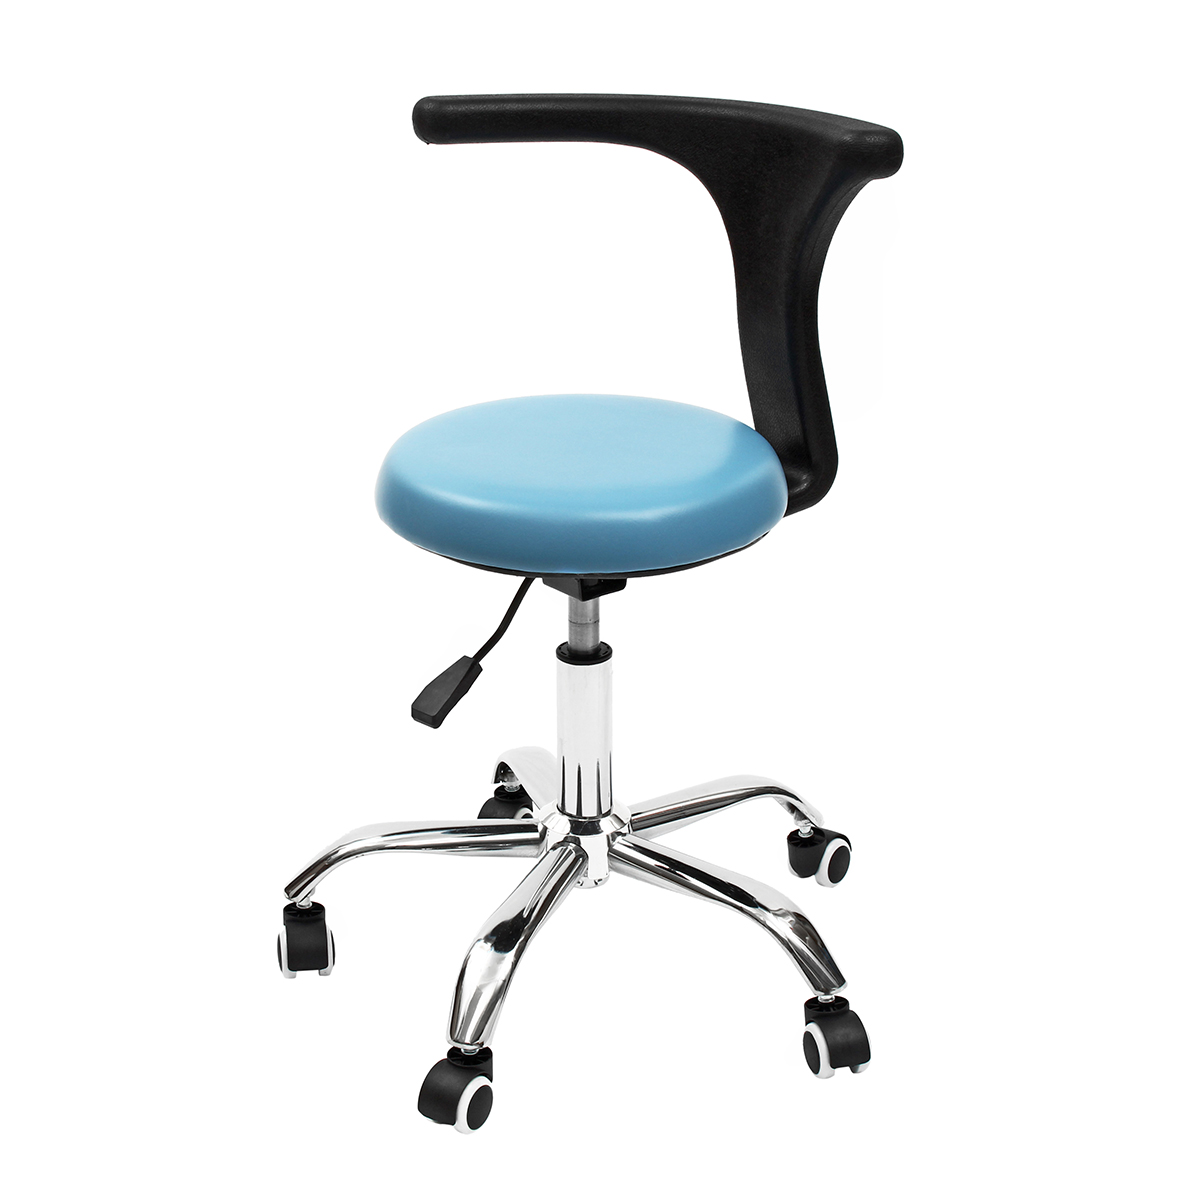 Furniture Barber Chairs Cooperative Beauty Stool Pulley Work Chair Rotary Lift Makeup Chair Beauty Chair Beauty Salon Special Round Stool